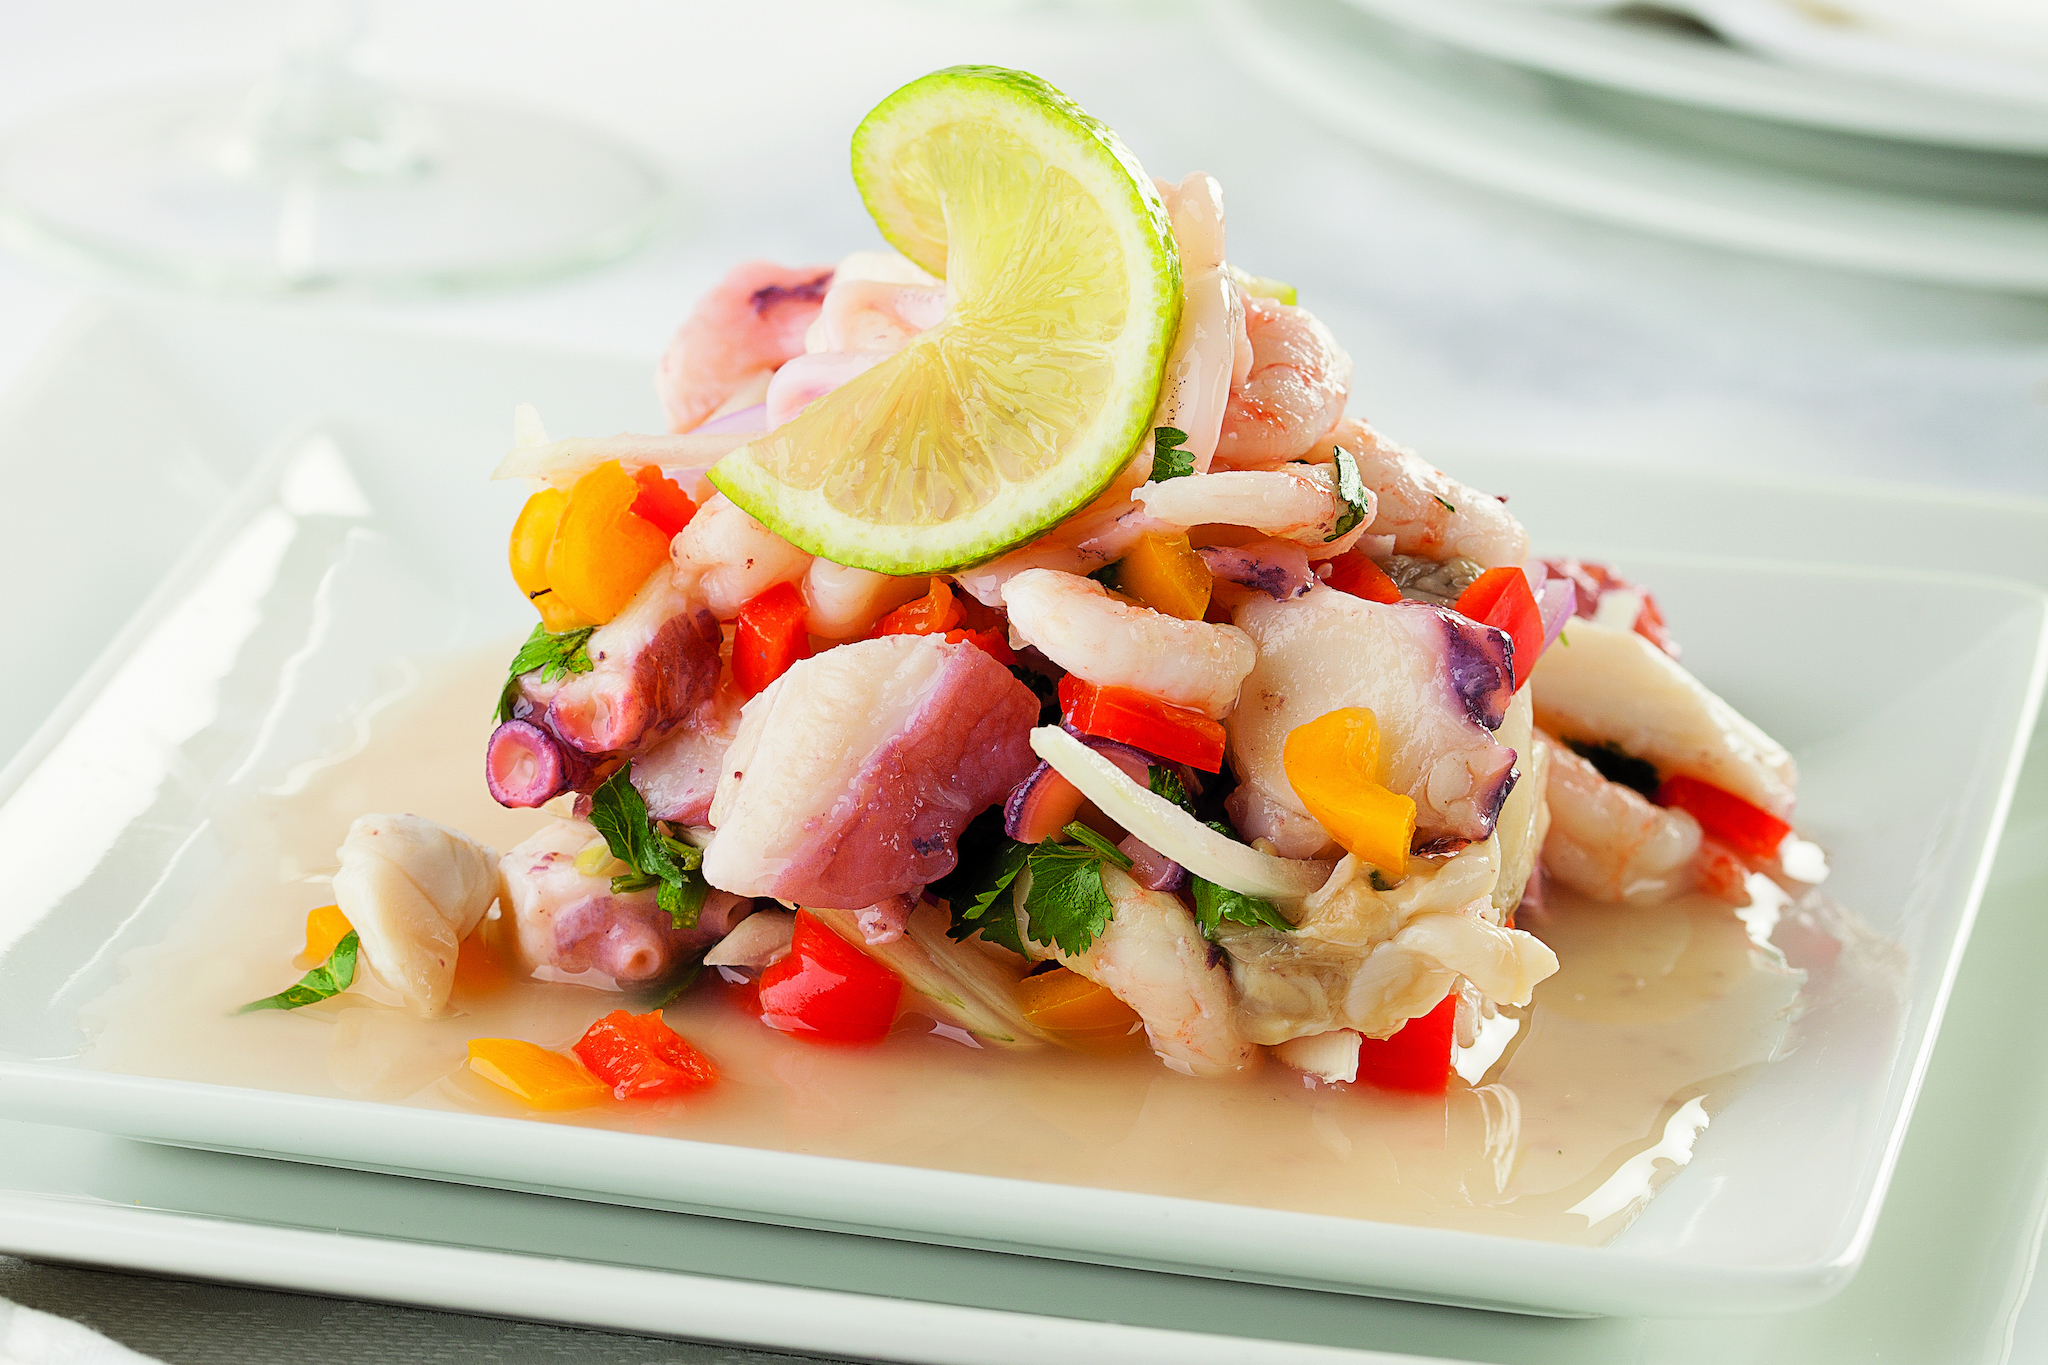 Find Peruvian-style ceviche at some of the best Latin American restaurants in Philadelphia